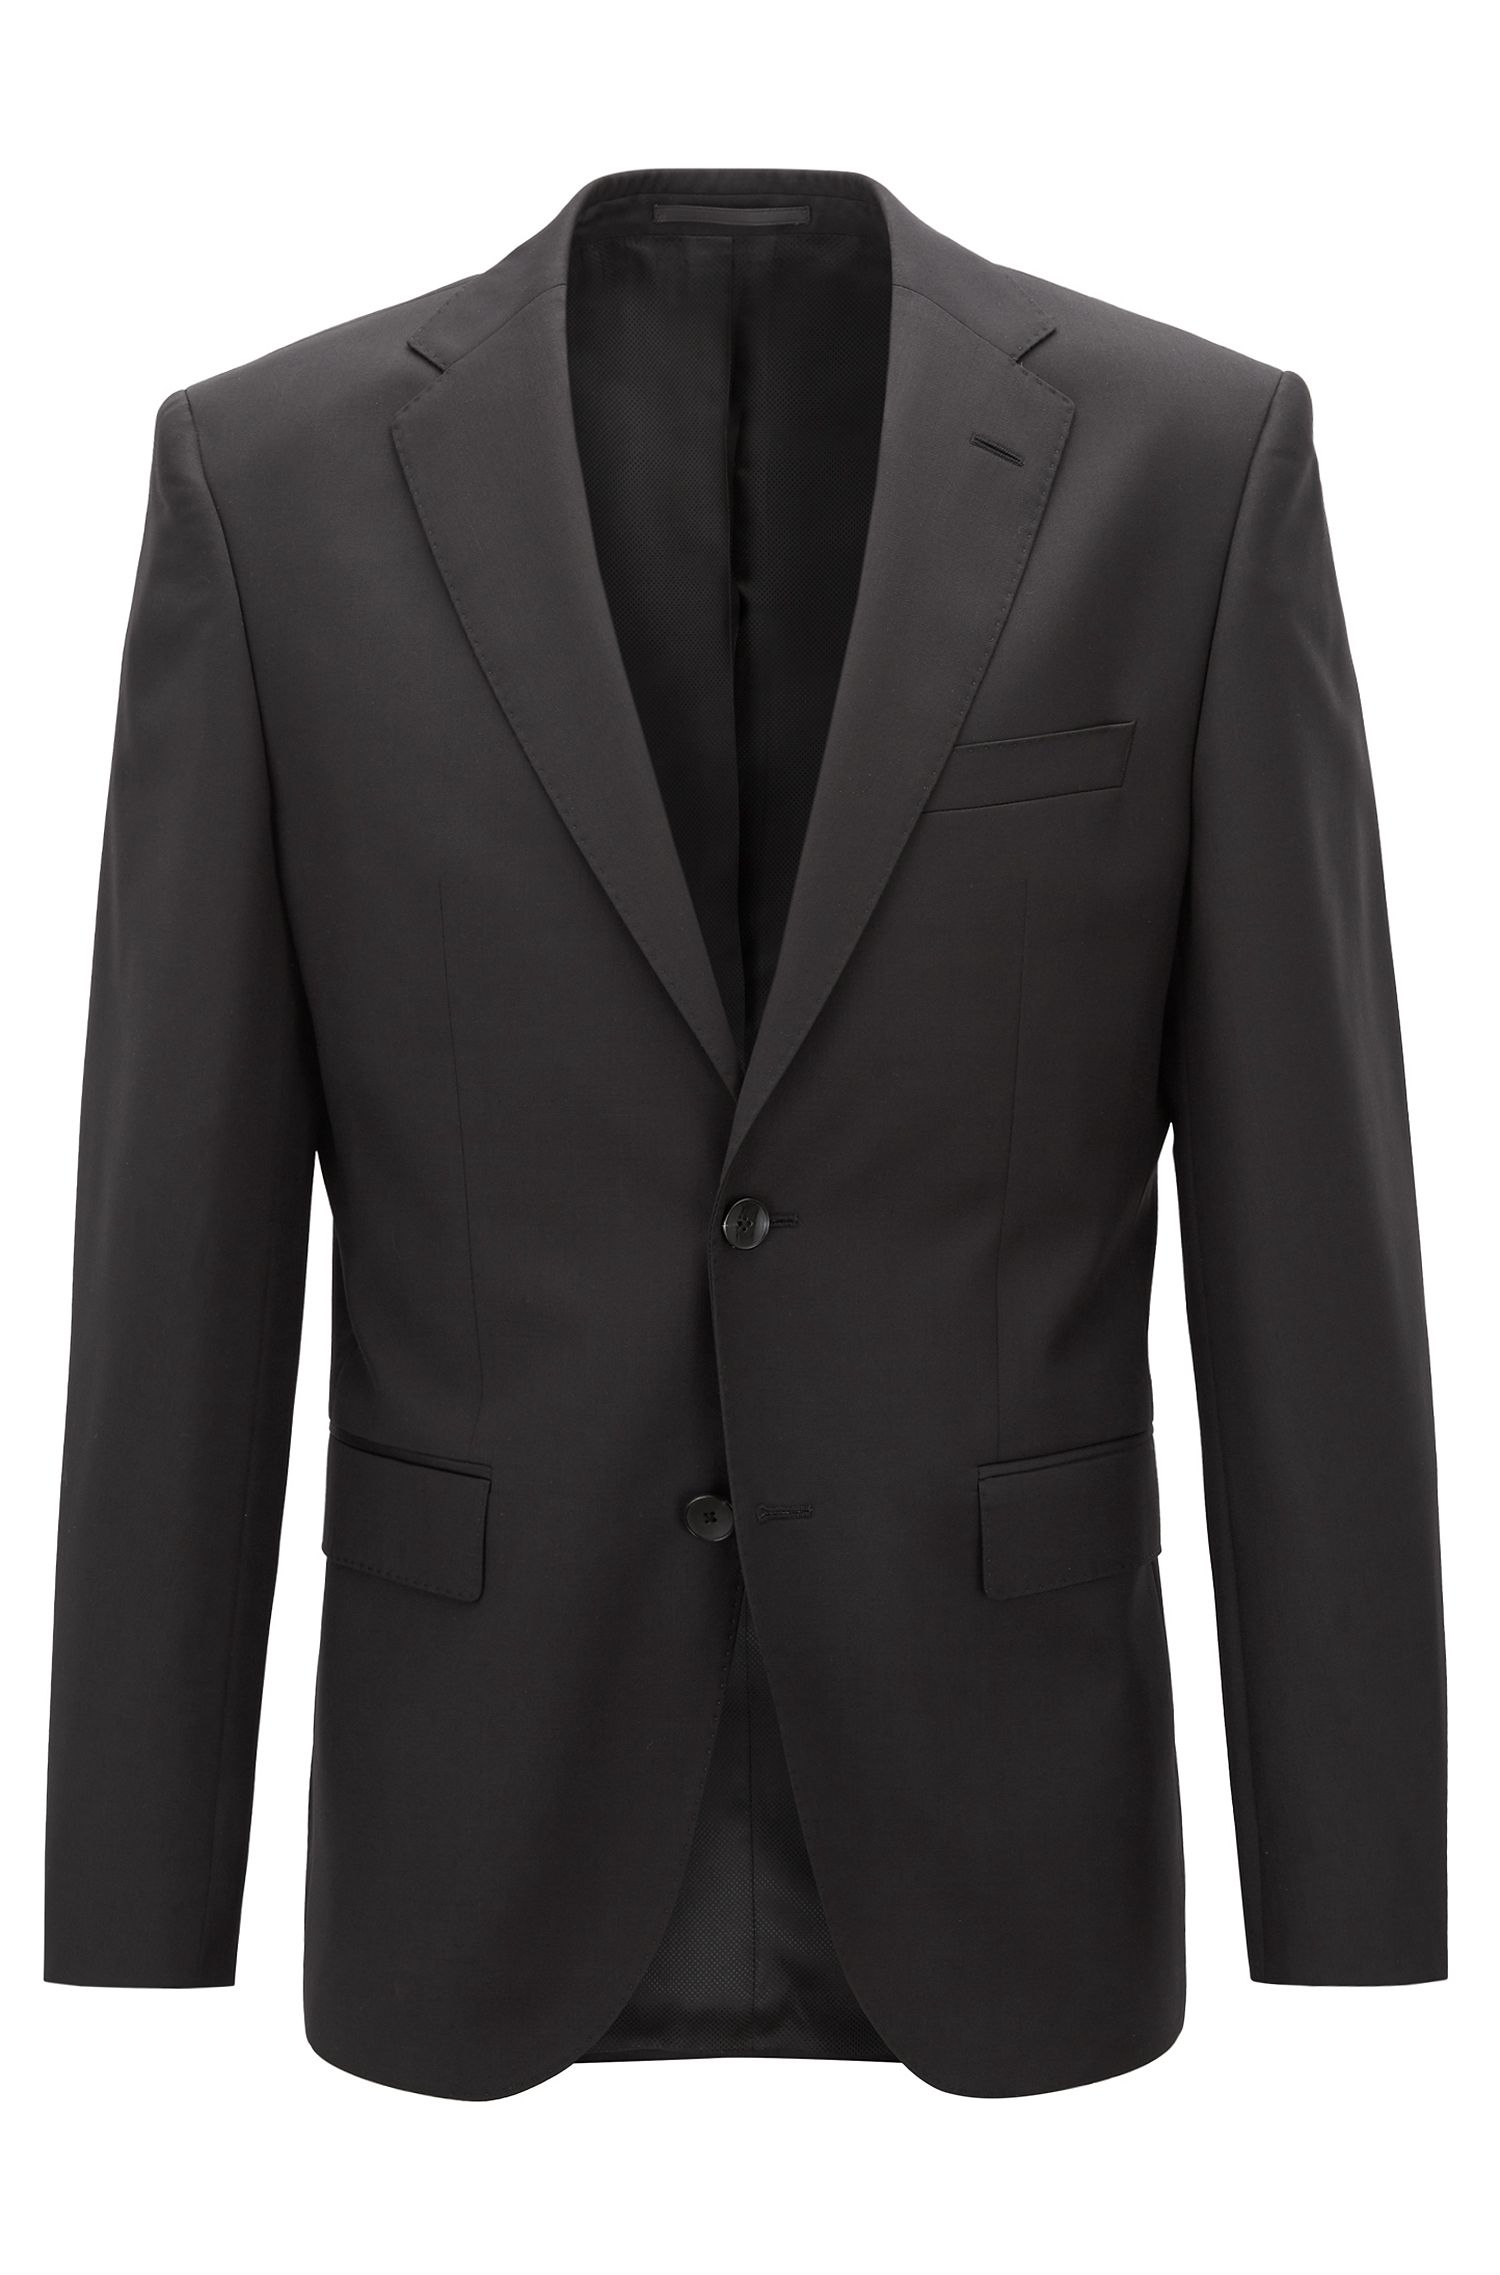 'Johnstons Cyl' | Regular Fit, Super 120 Italian Virgin Wool Sport Coat